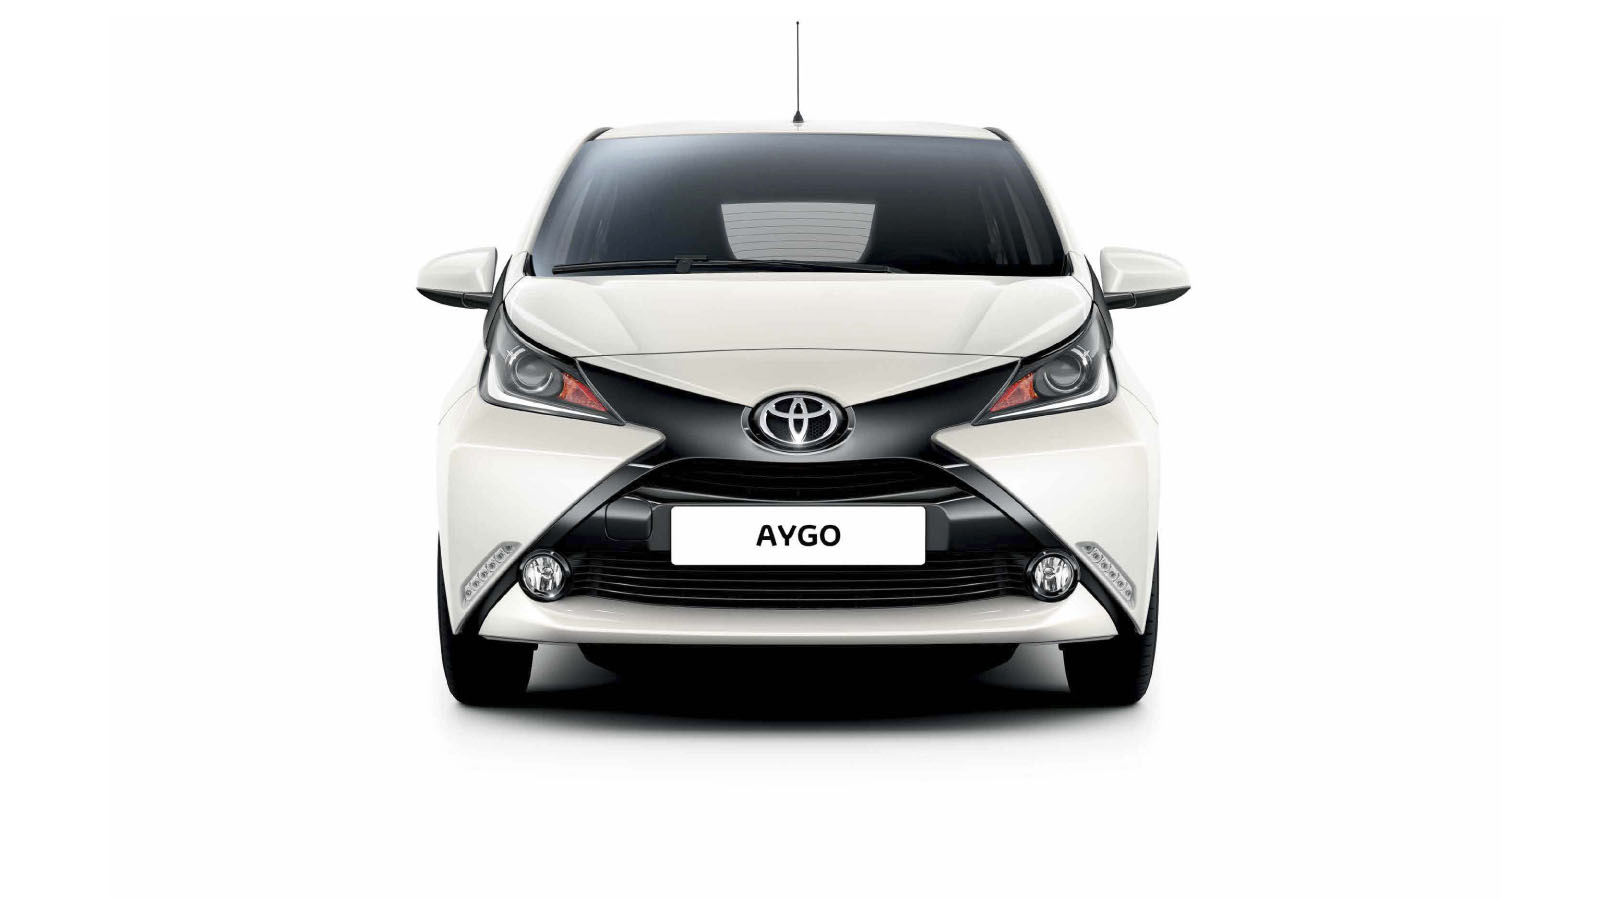 toyota aygo 2015 exterior 1. Black Bedroom Furniture Sets. Home Design Ideas